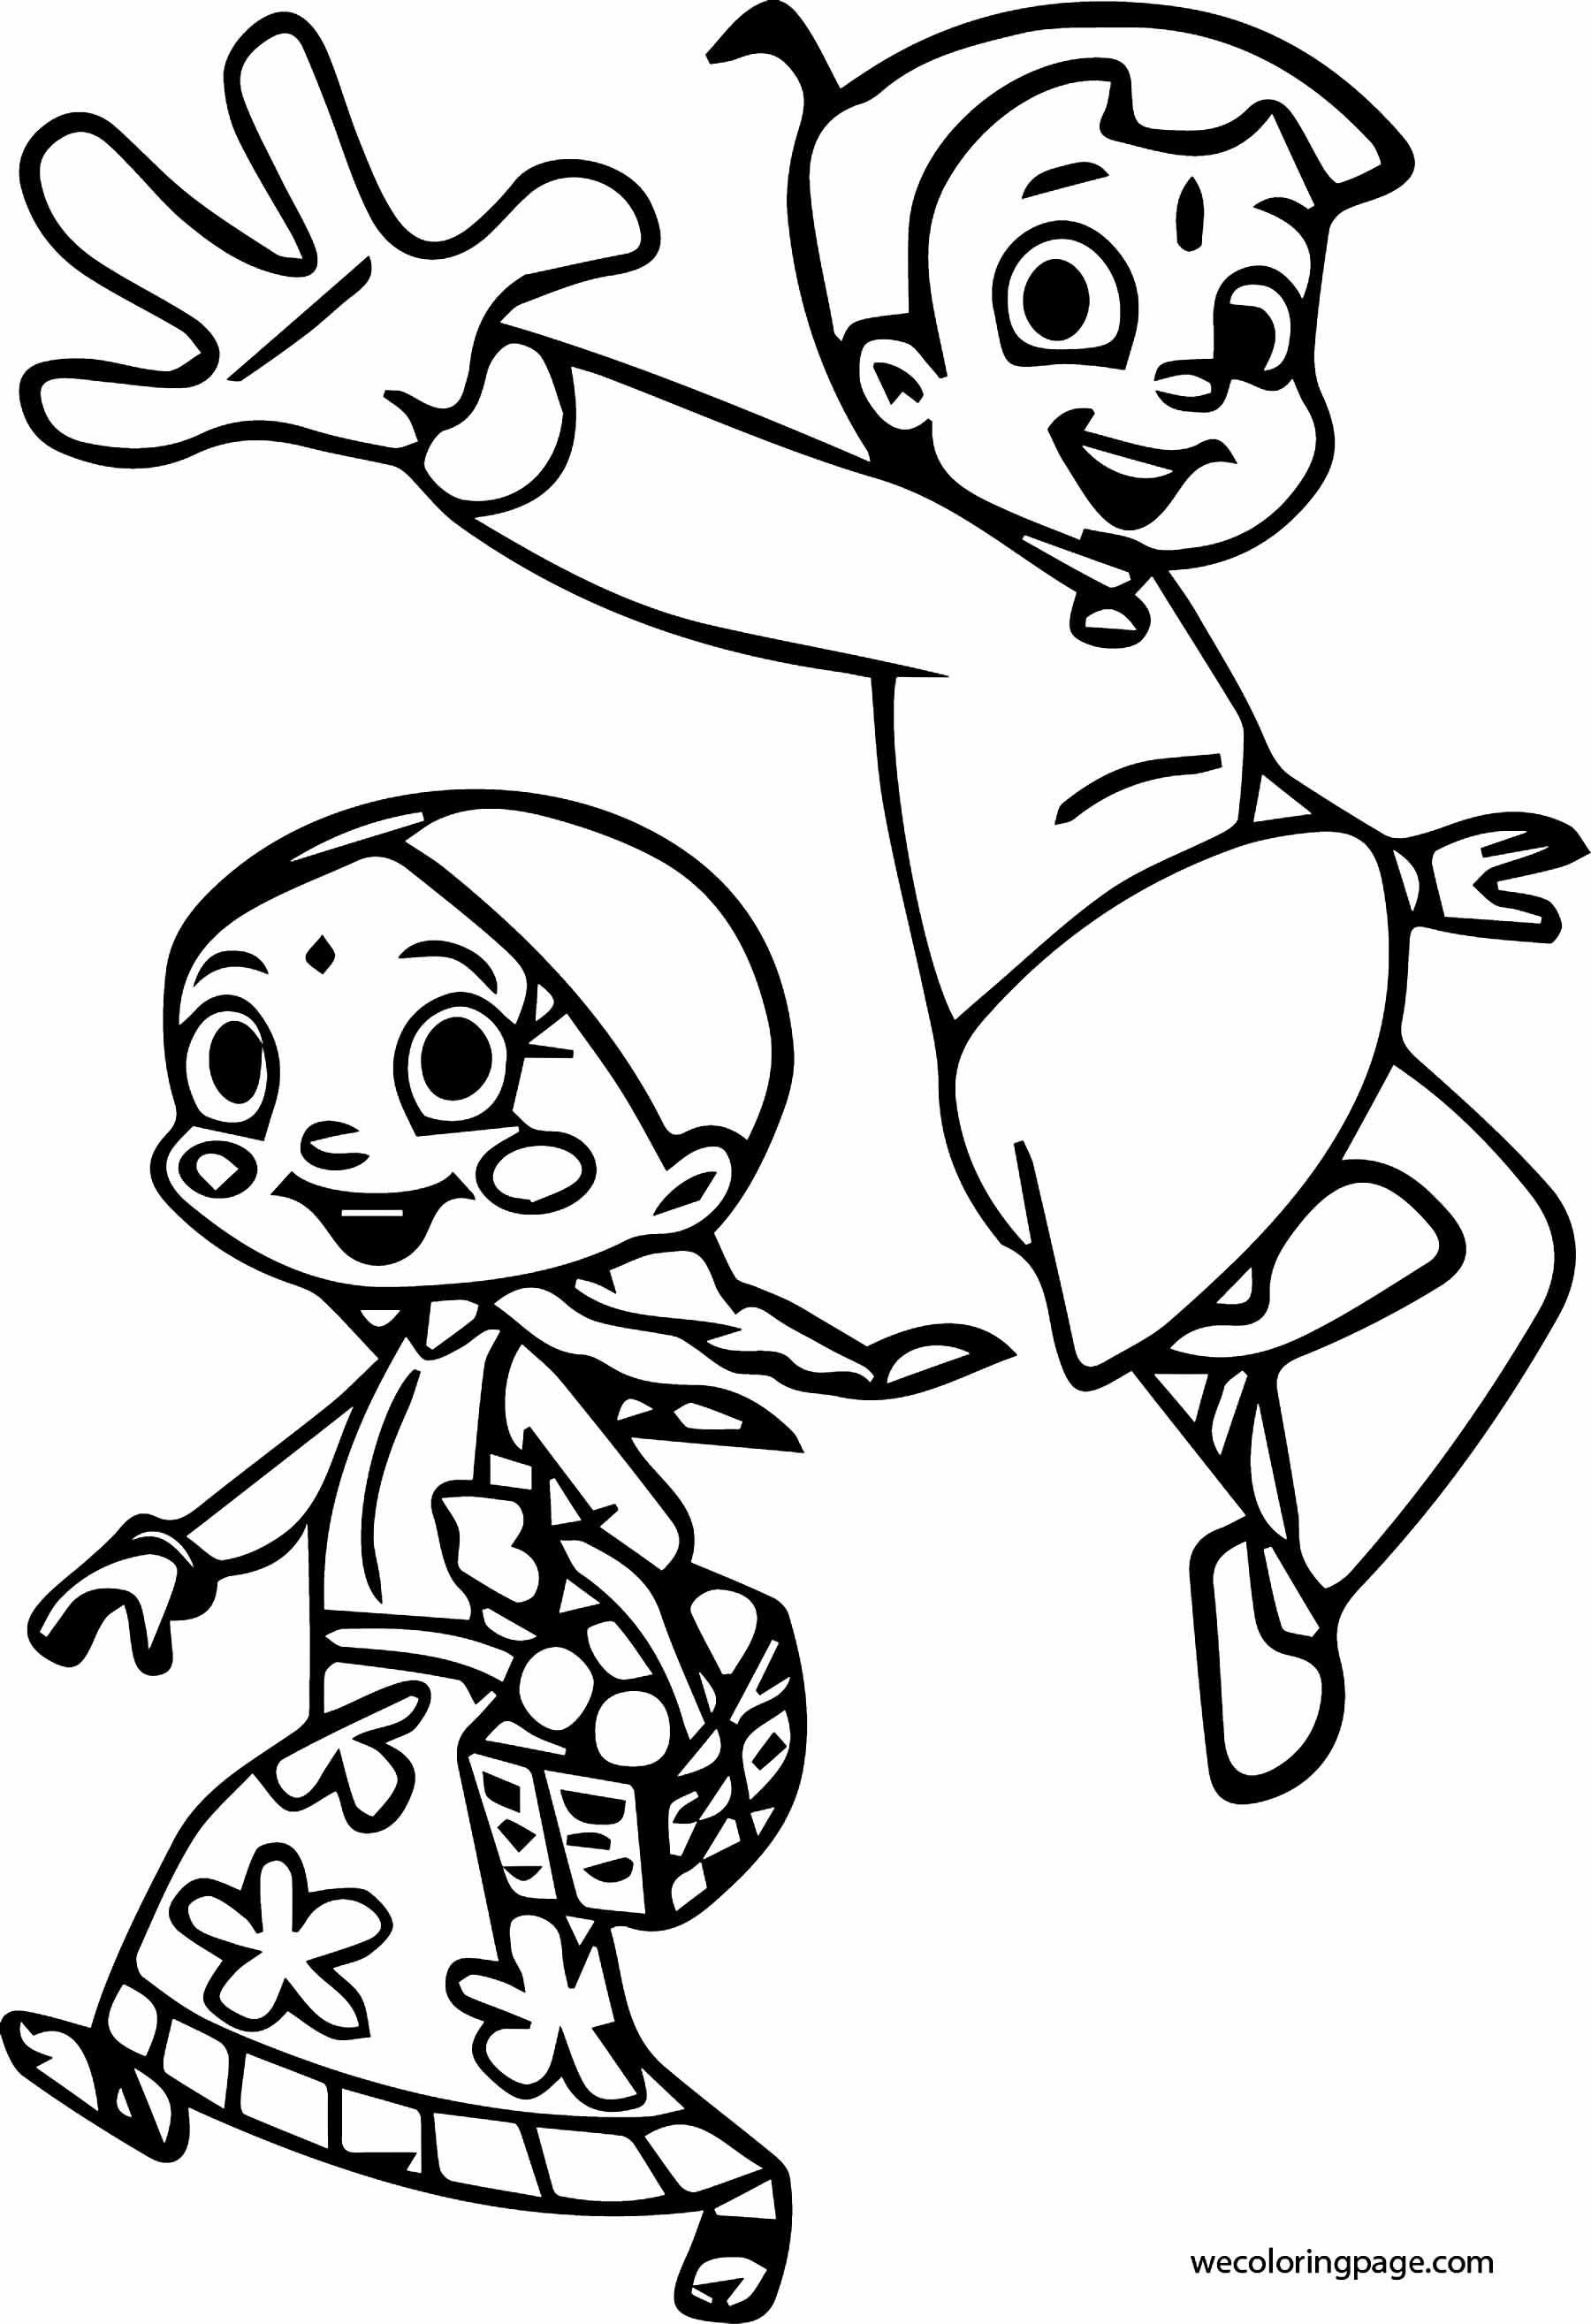 Chhota Bheem Coloring Page 34